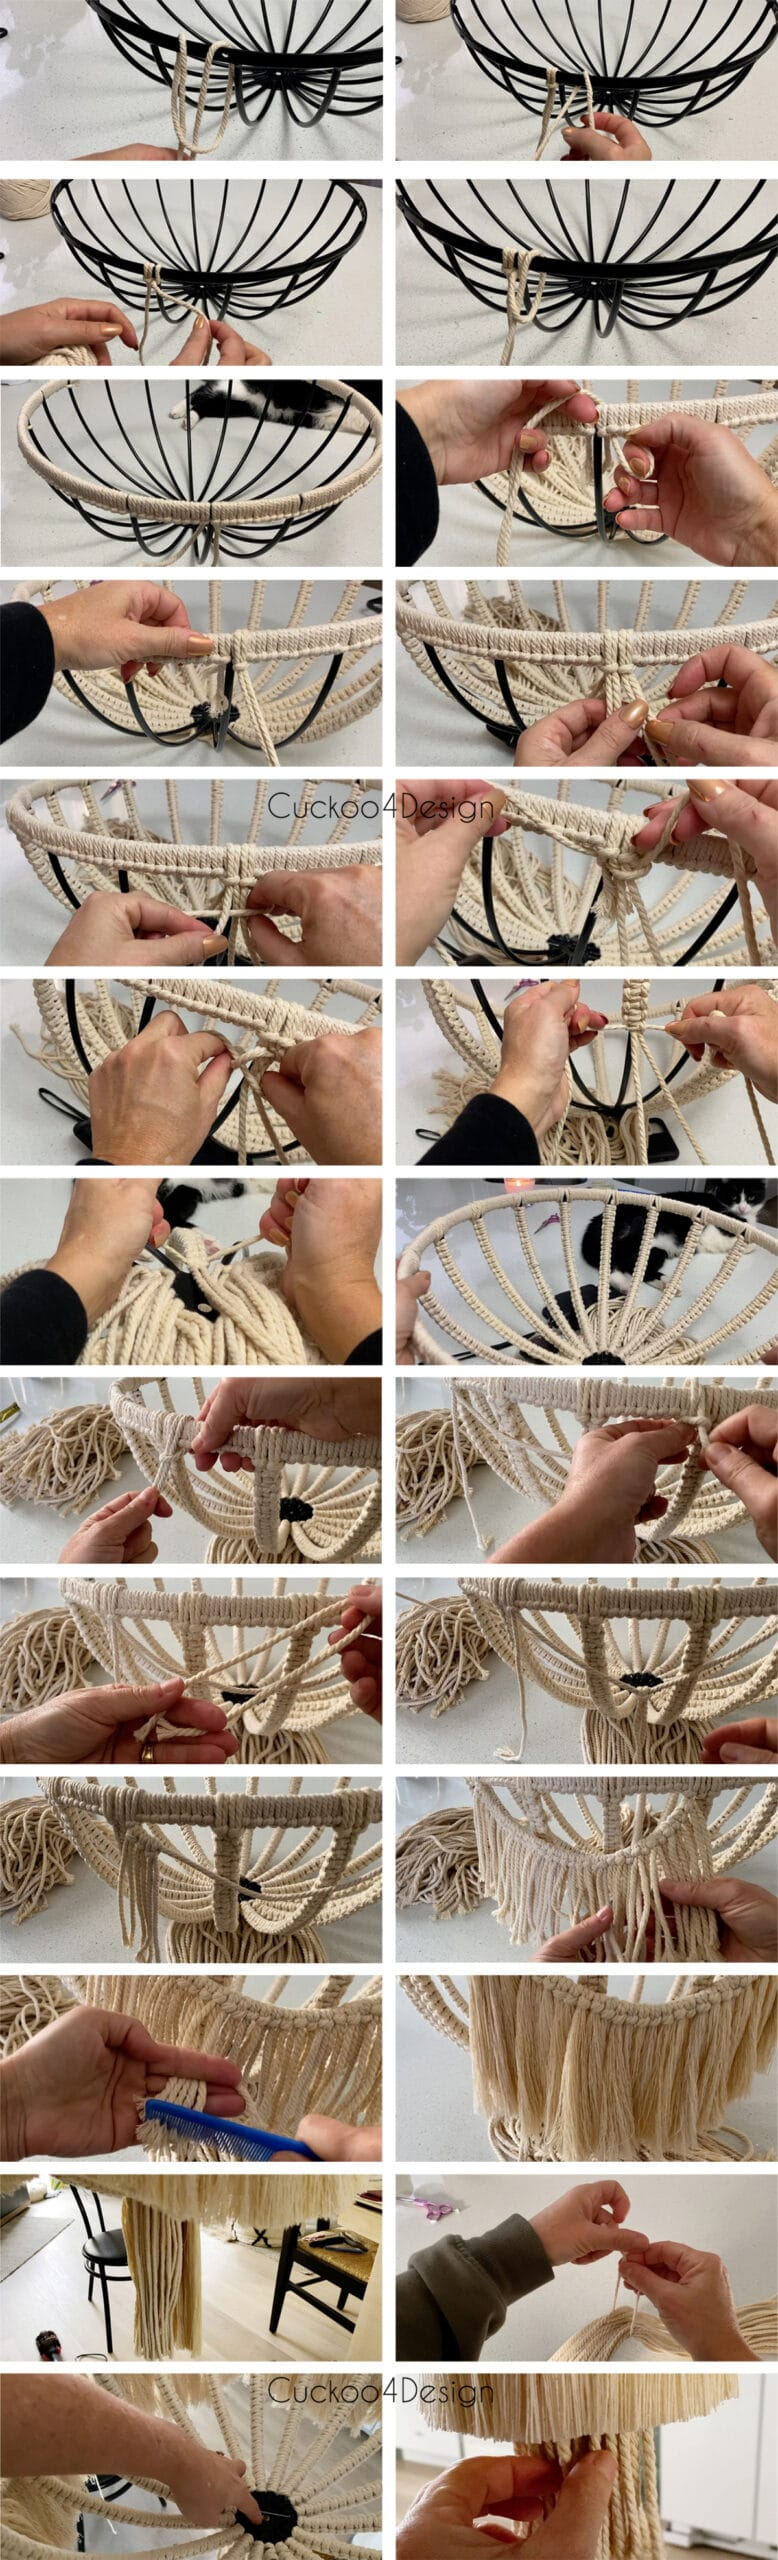 first part step-by-step photo instructions about how to make macrame chandelier